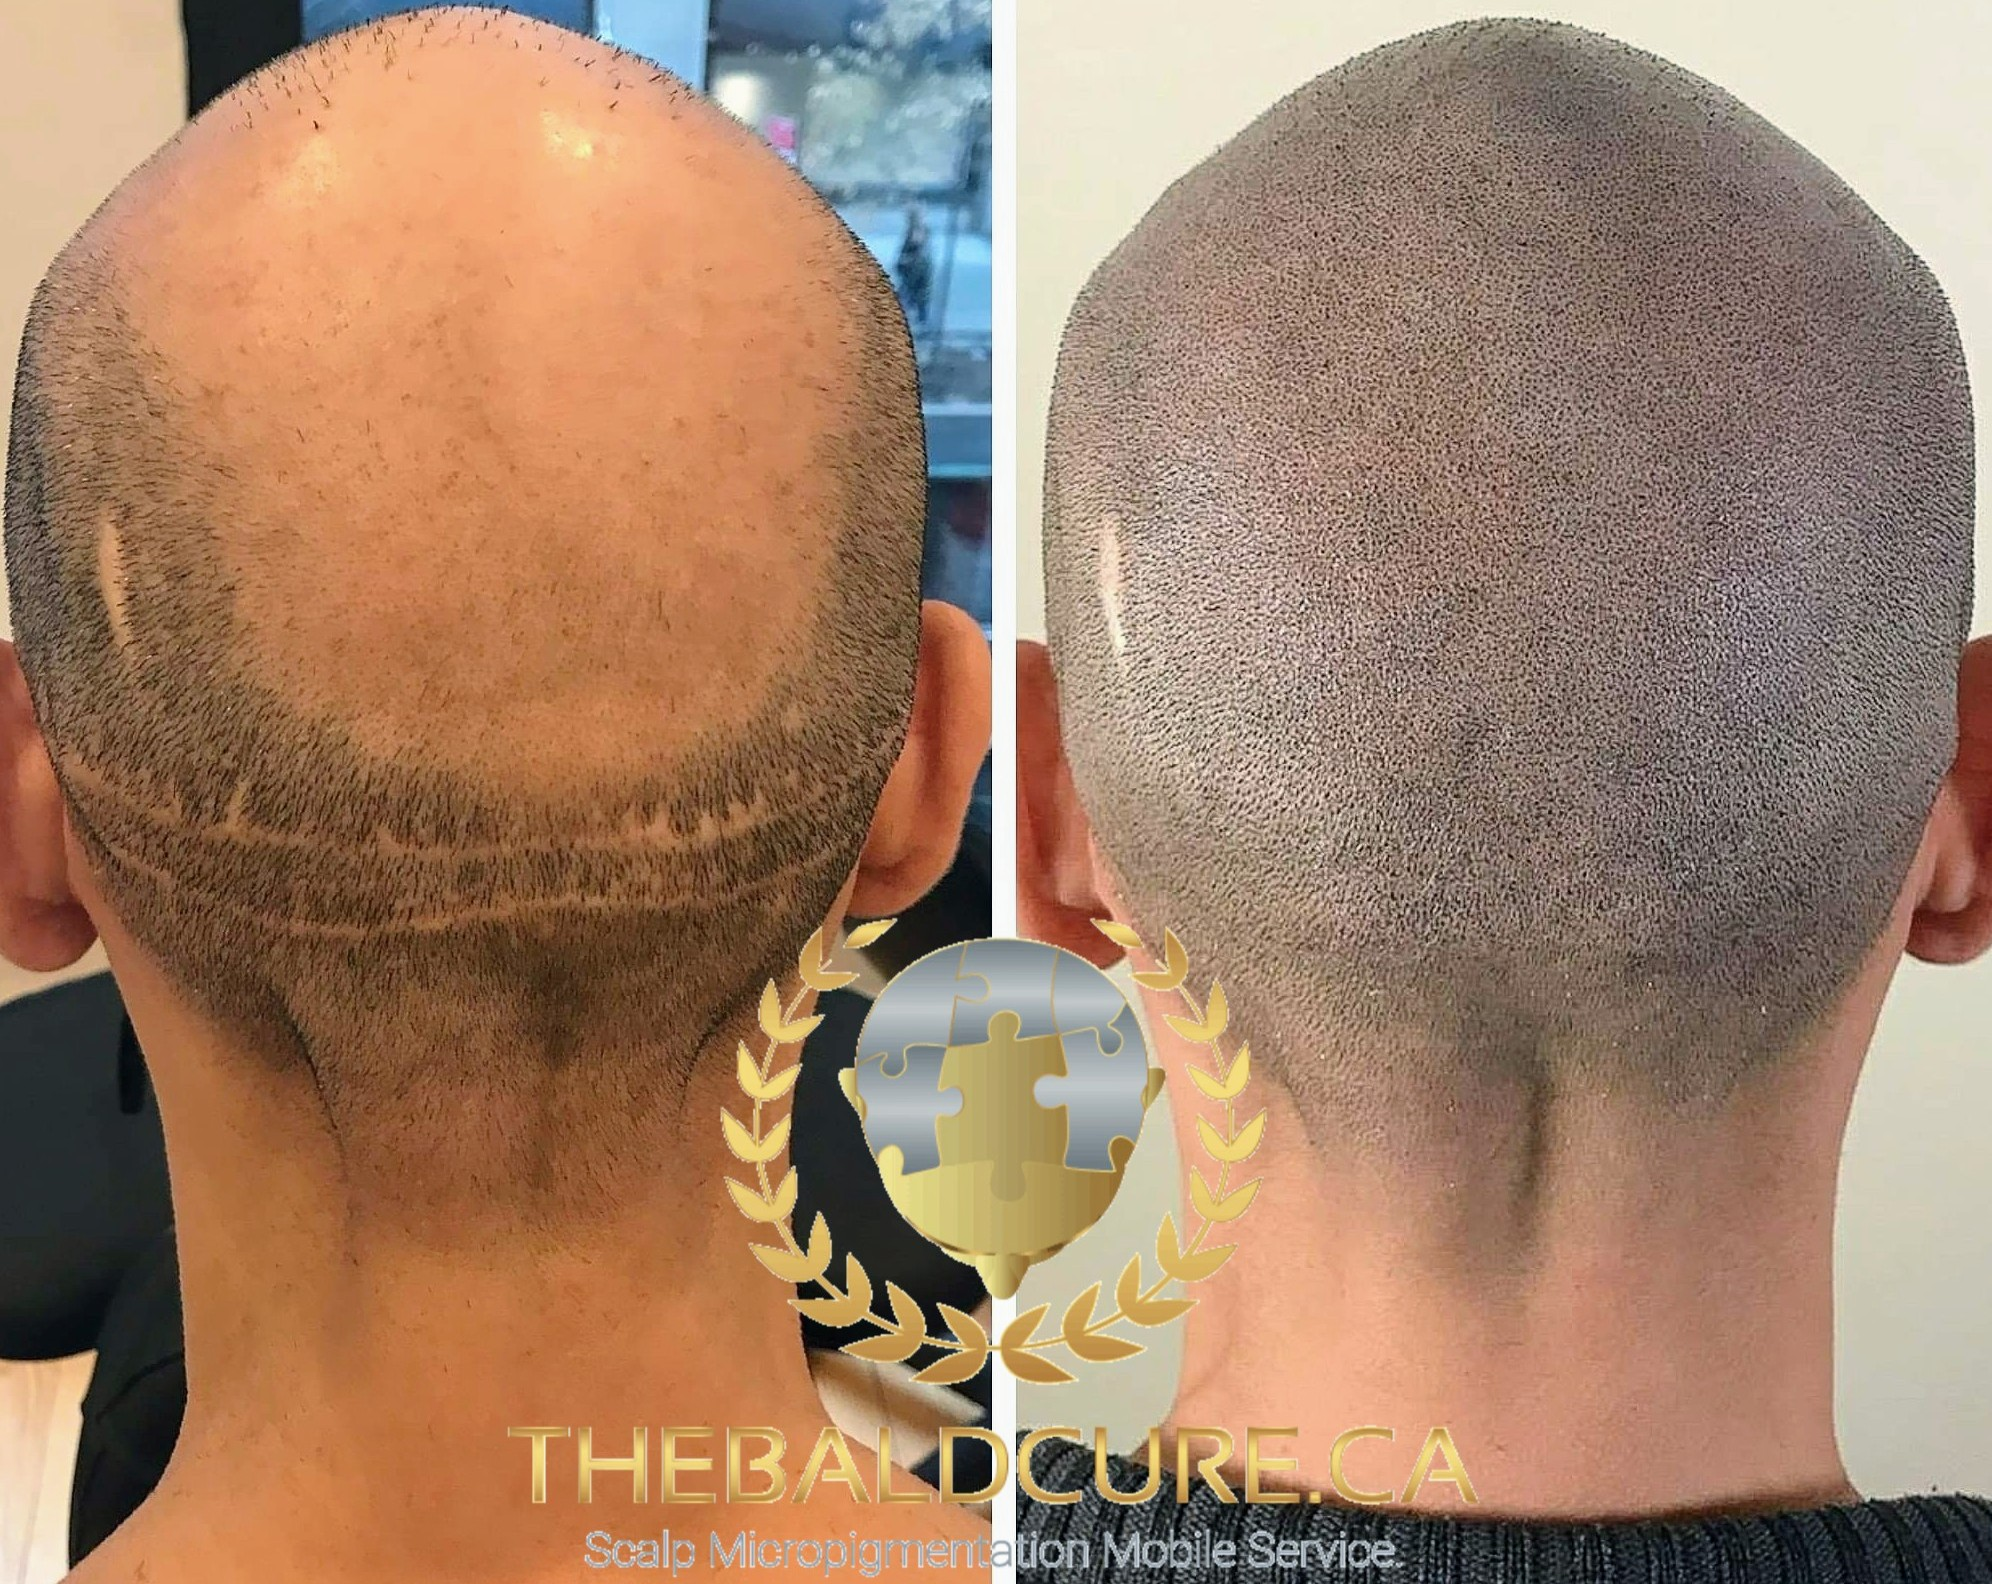 The Bald Cure Mobile Service In The Comfort Of Your Home We Beat Any Price PicsArt_02-21-01.59.202